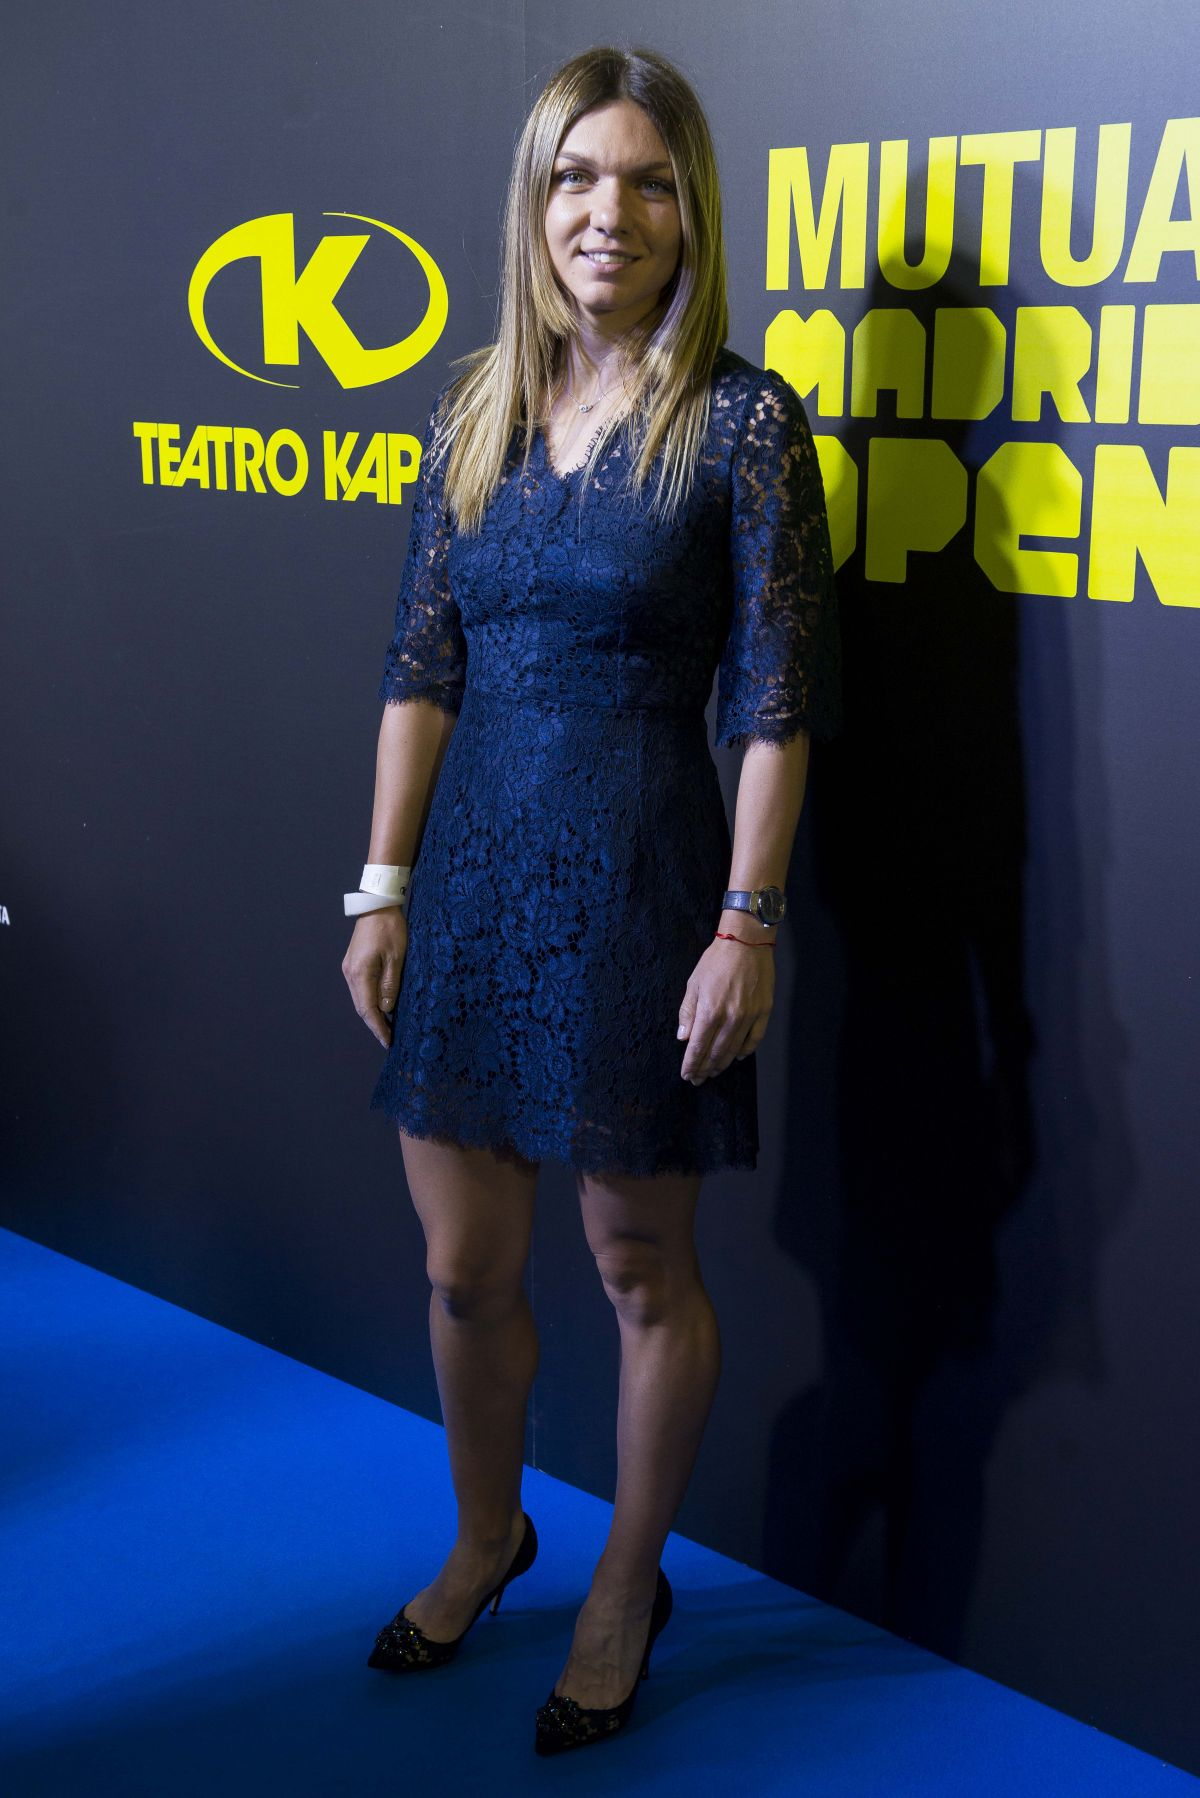 Simona Halep - Page 12 Simona-halep-at-mutua-madrid-open-party-in-madrid-05-05-2017_2